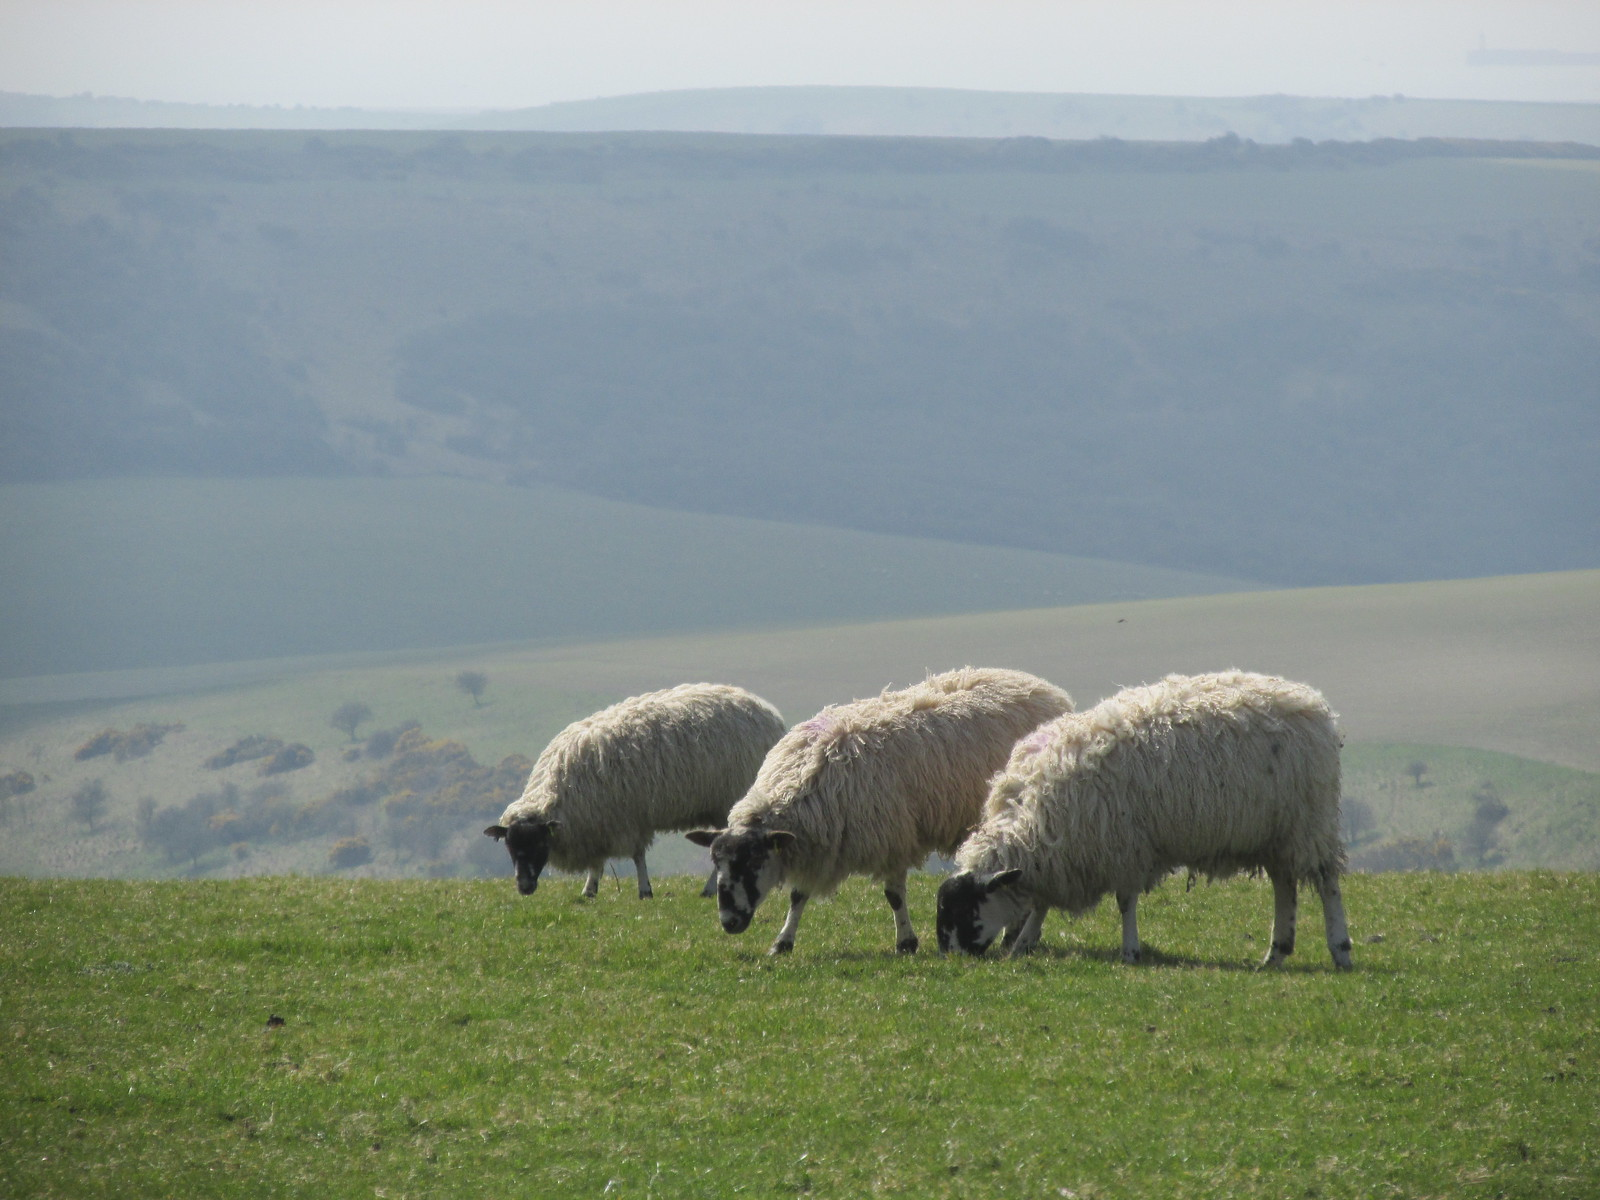 April 6, 2015: Glynde to Seaford Sheep on South Downs